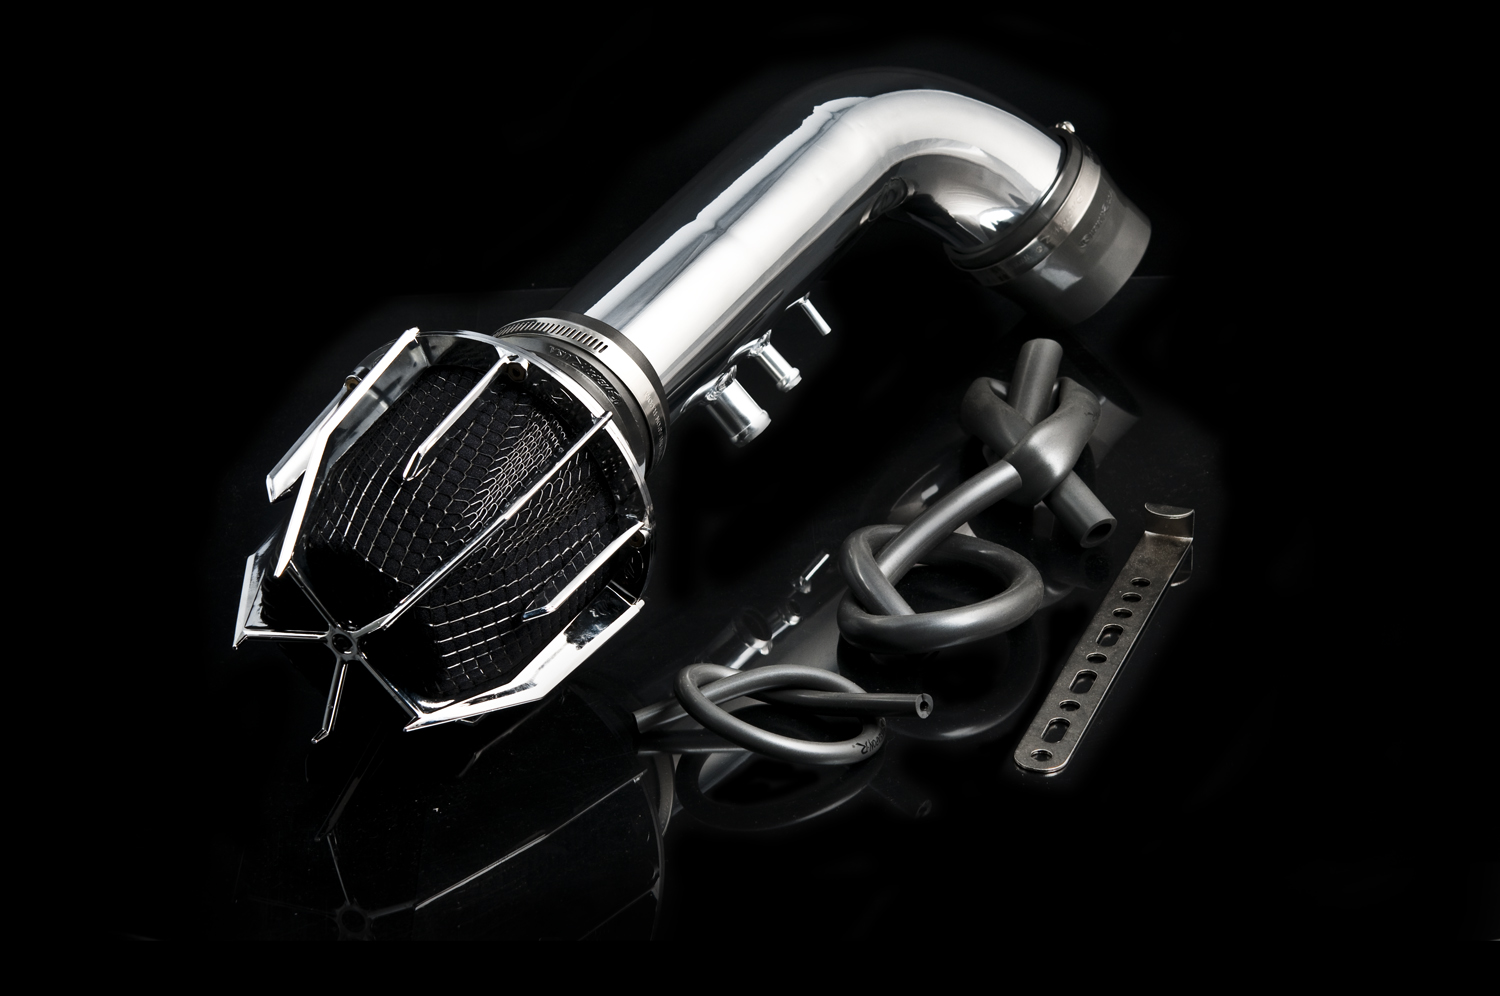 Acura Legend W/O TCcs 1991-1995 Weapon-R Dragon Air Intake